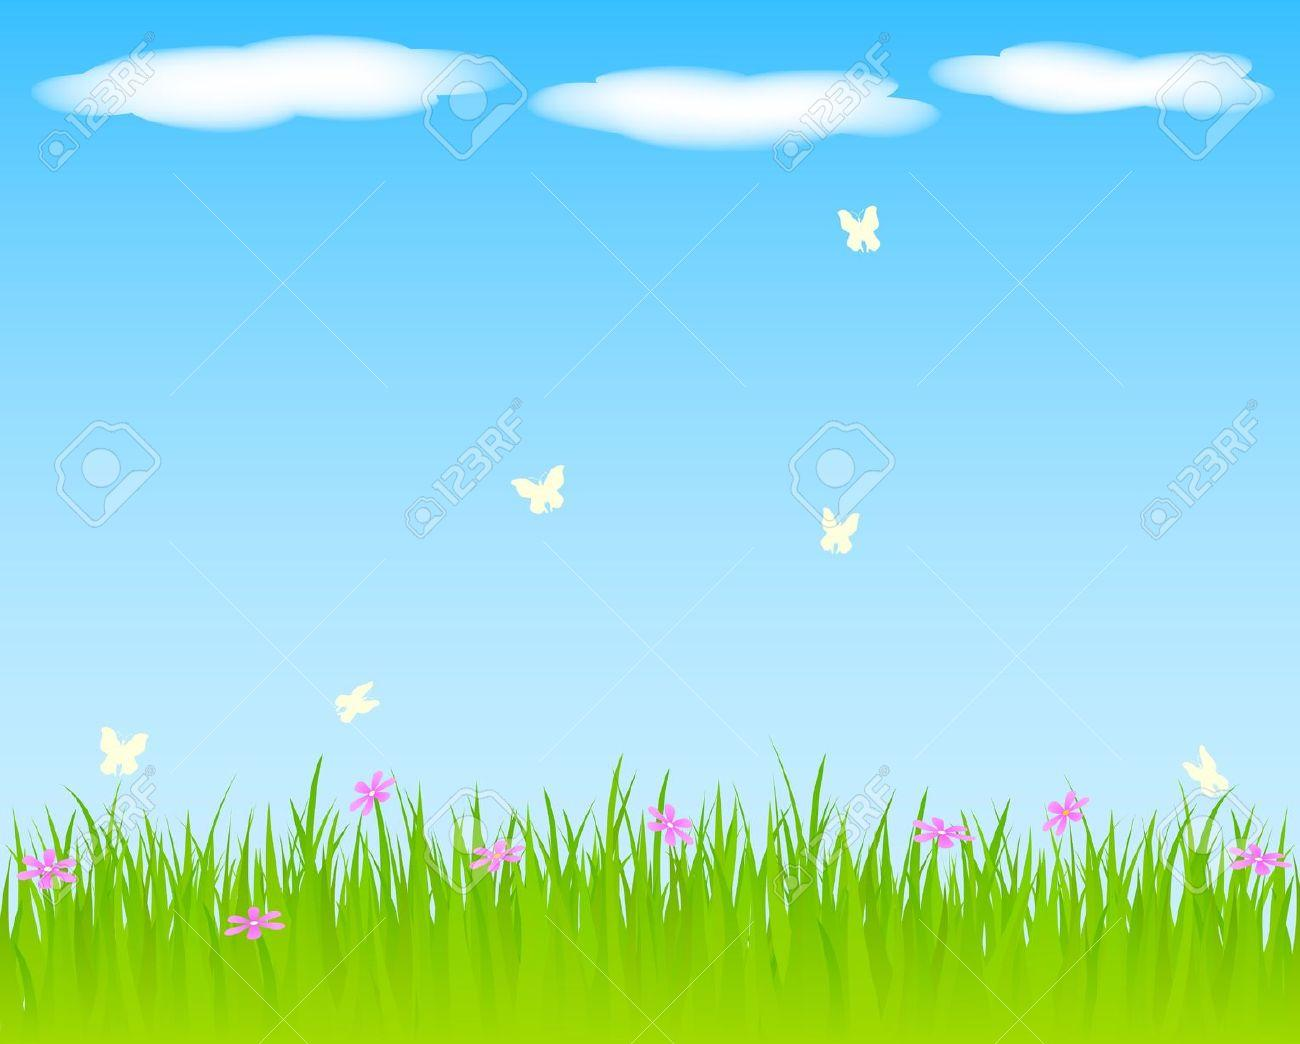 Sunny grass background clipart image library stock Free Spring Background Cliparts, Download Free Clip Art, Free Clip ... image library stock